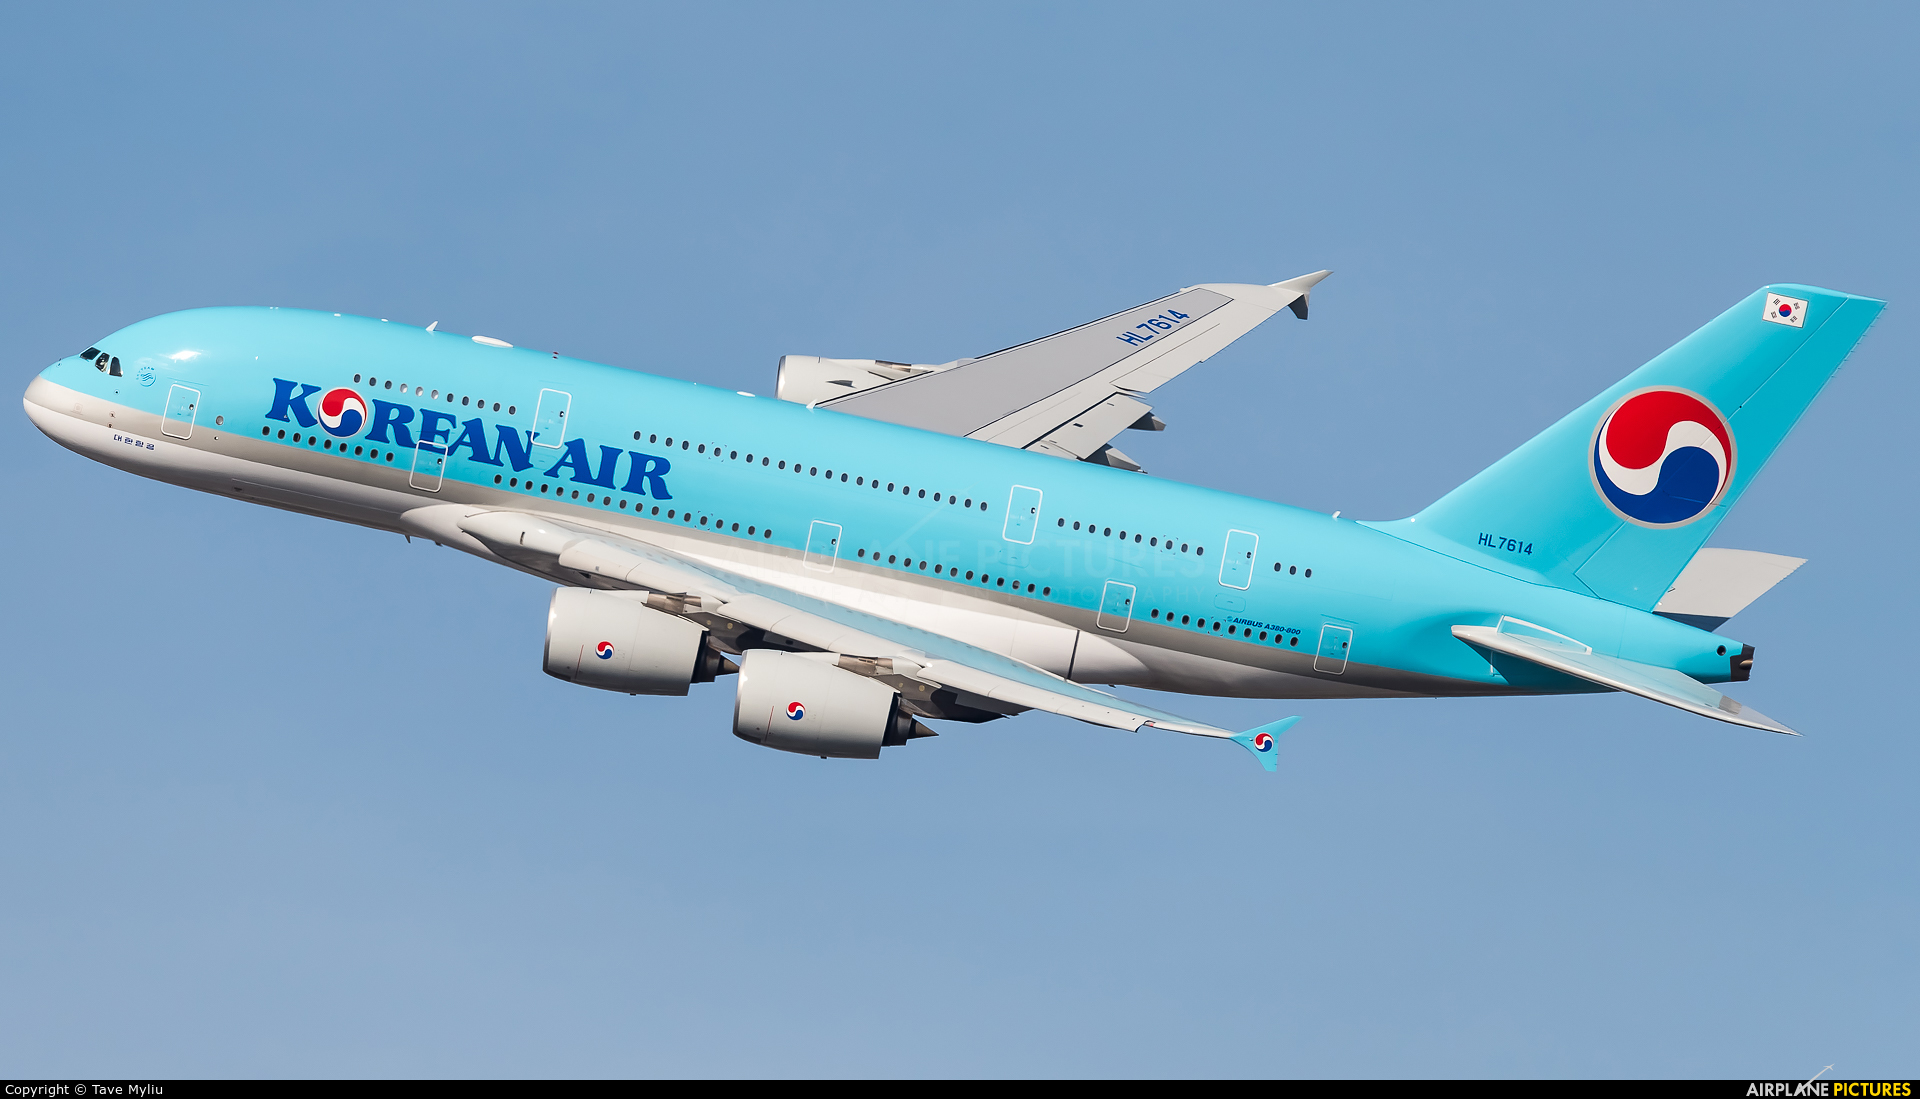 Korean Air HL7614 aircraft at New York - John F. Kennedy Intl